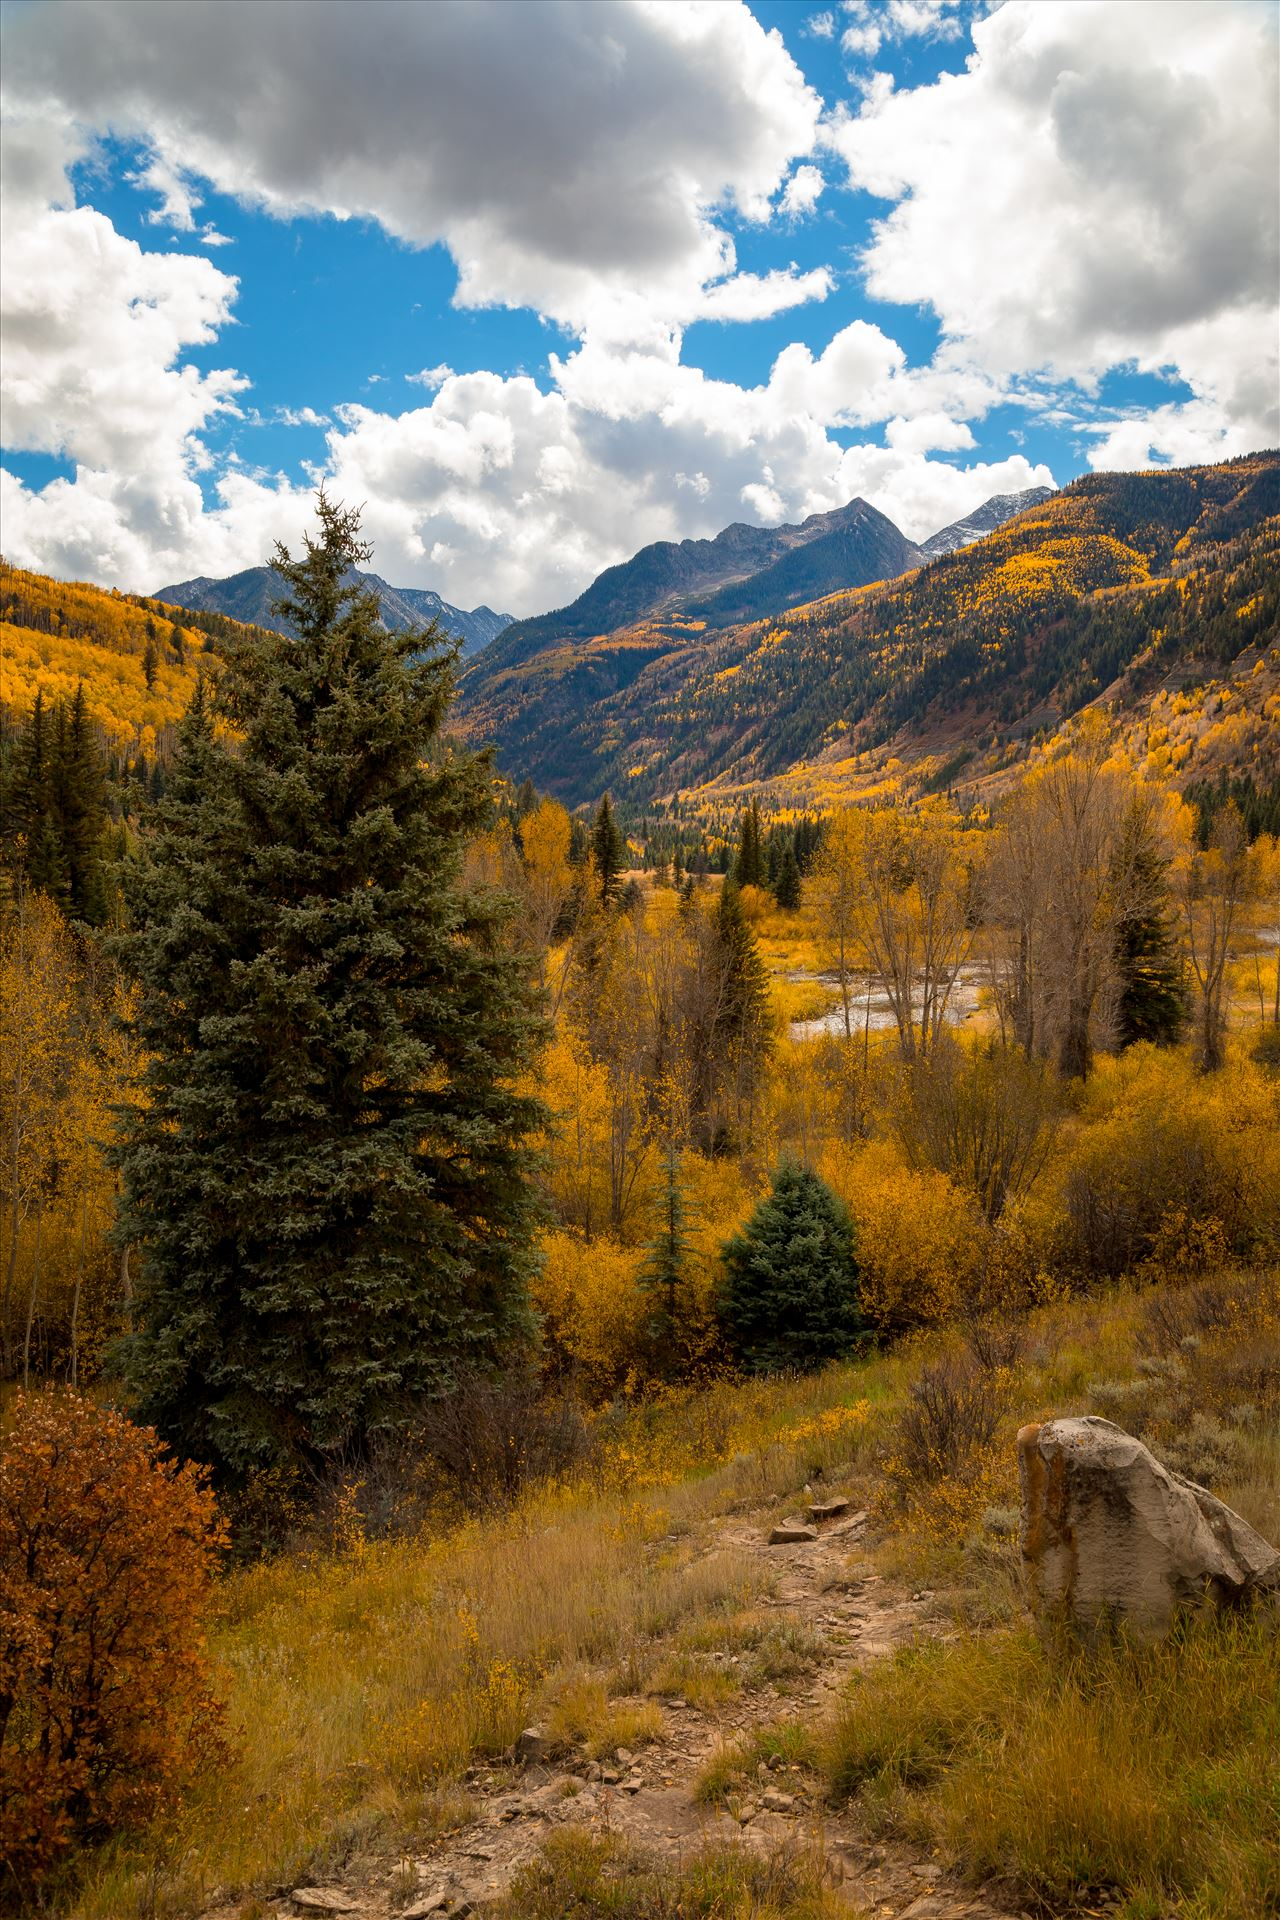 Fall Hiking Near Redstone, Colorado A trailhead between Marble and Redstone, Colorado. by Scott Smith Photos